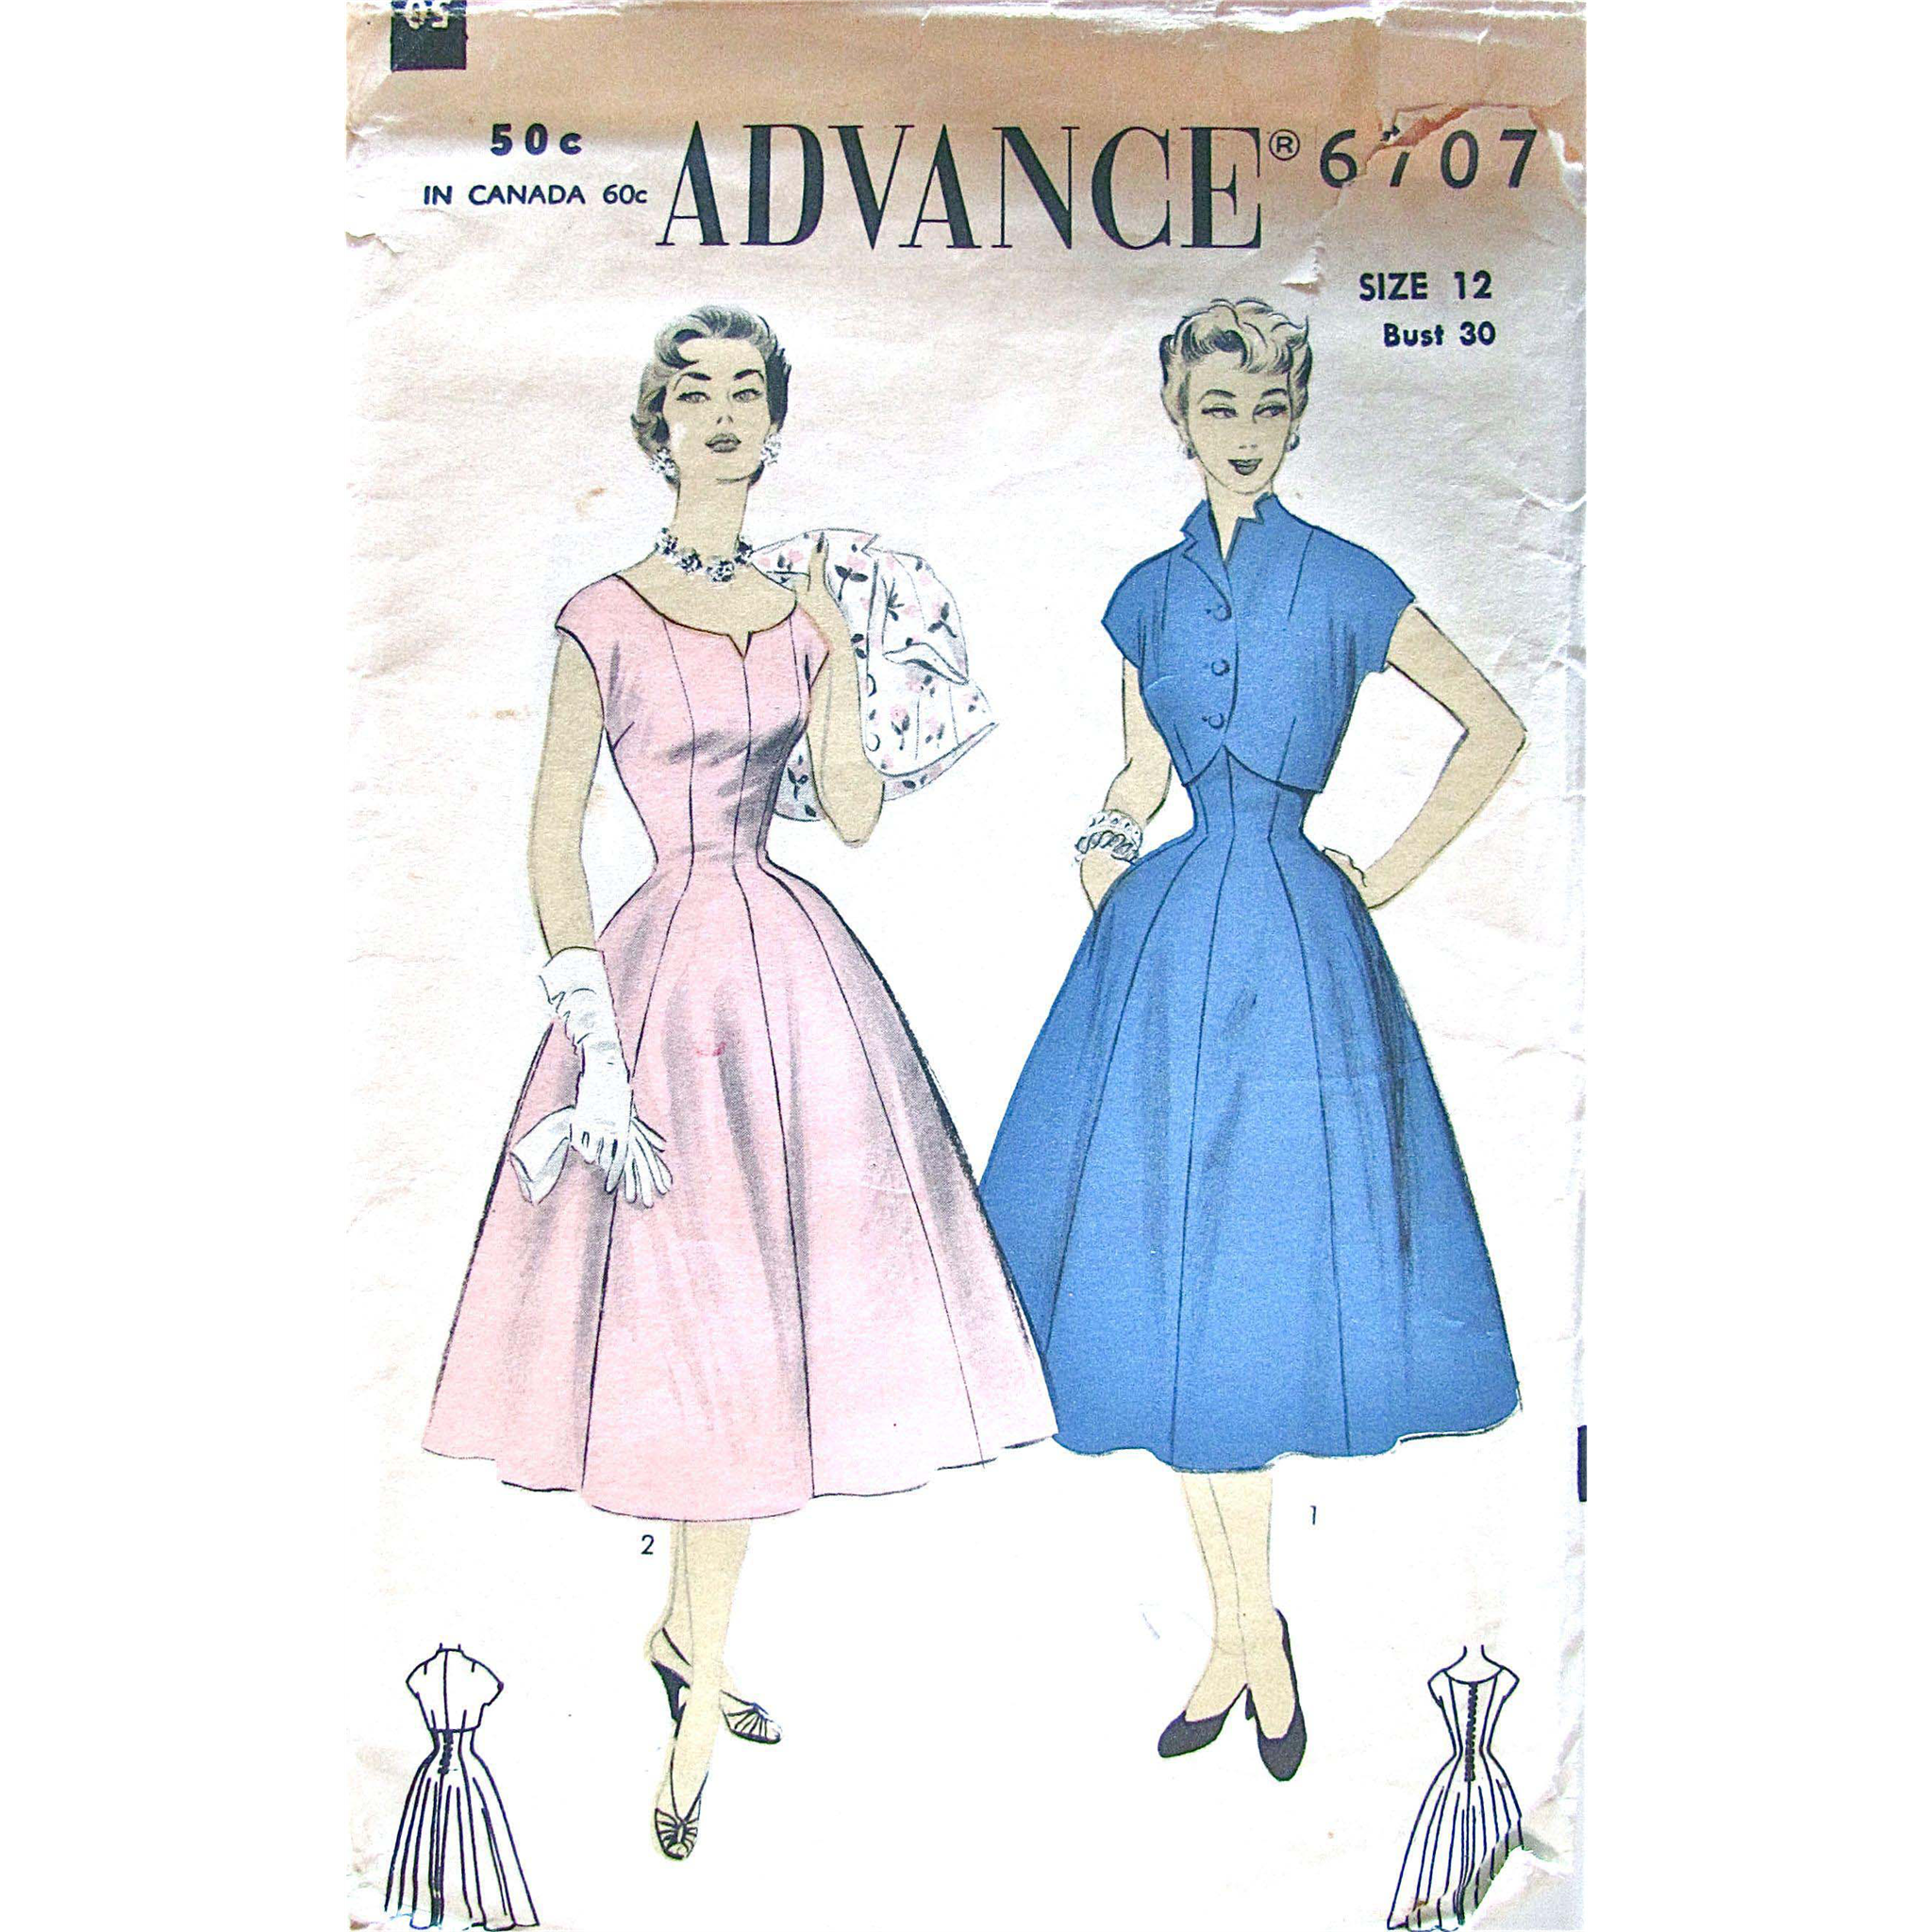 Misses Dress and Bolero, Advance Pattern 6707, Vintage 1950s, Size 12, Bust 30, Die Cut and Complete